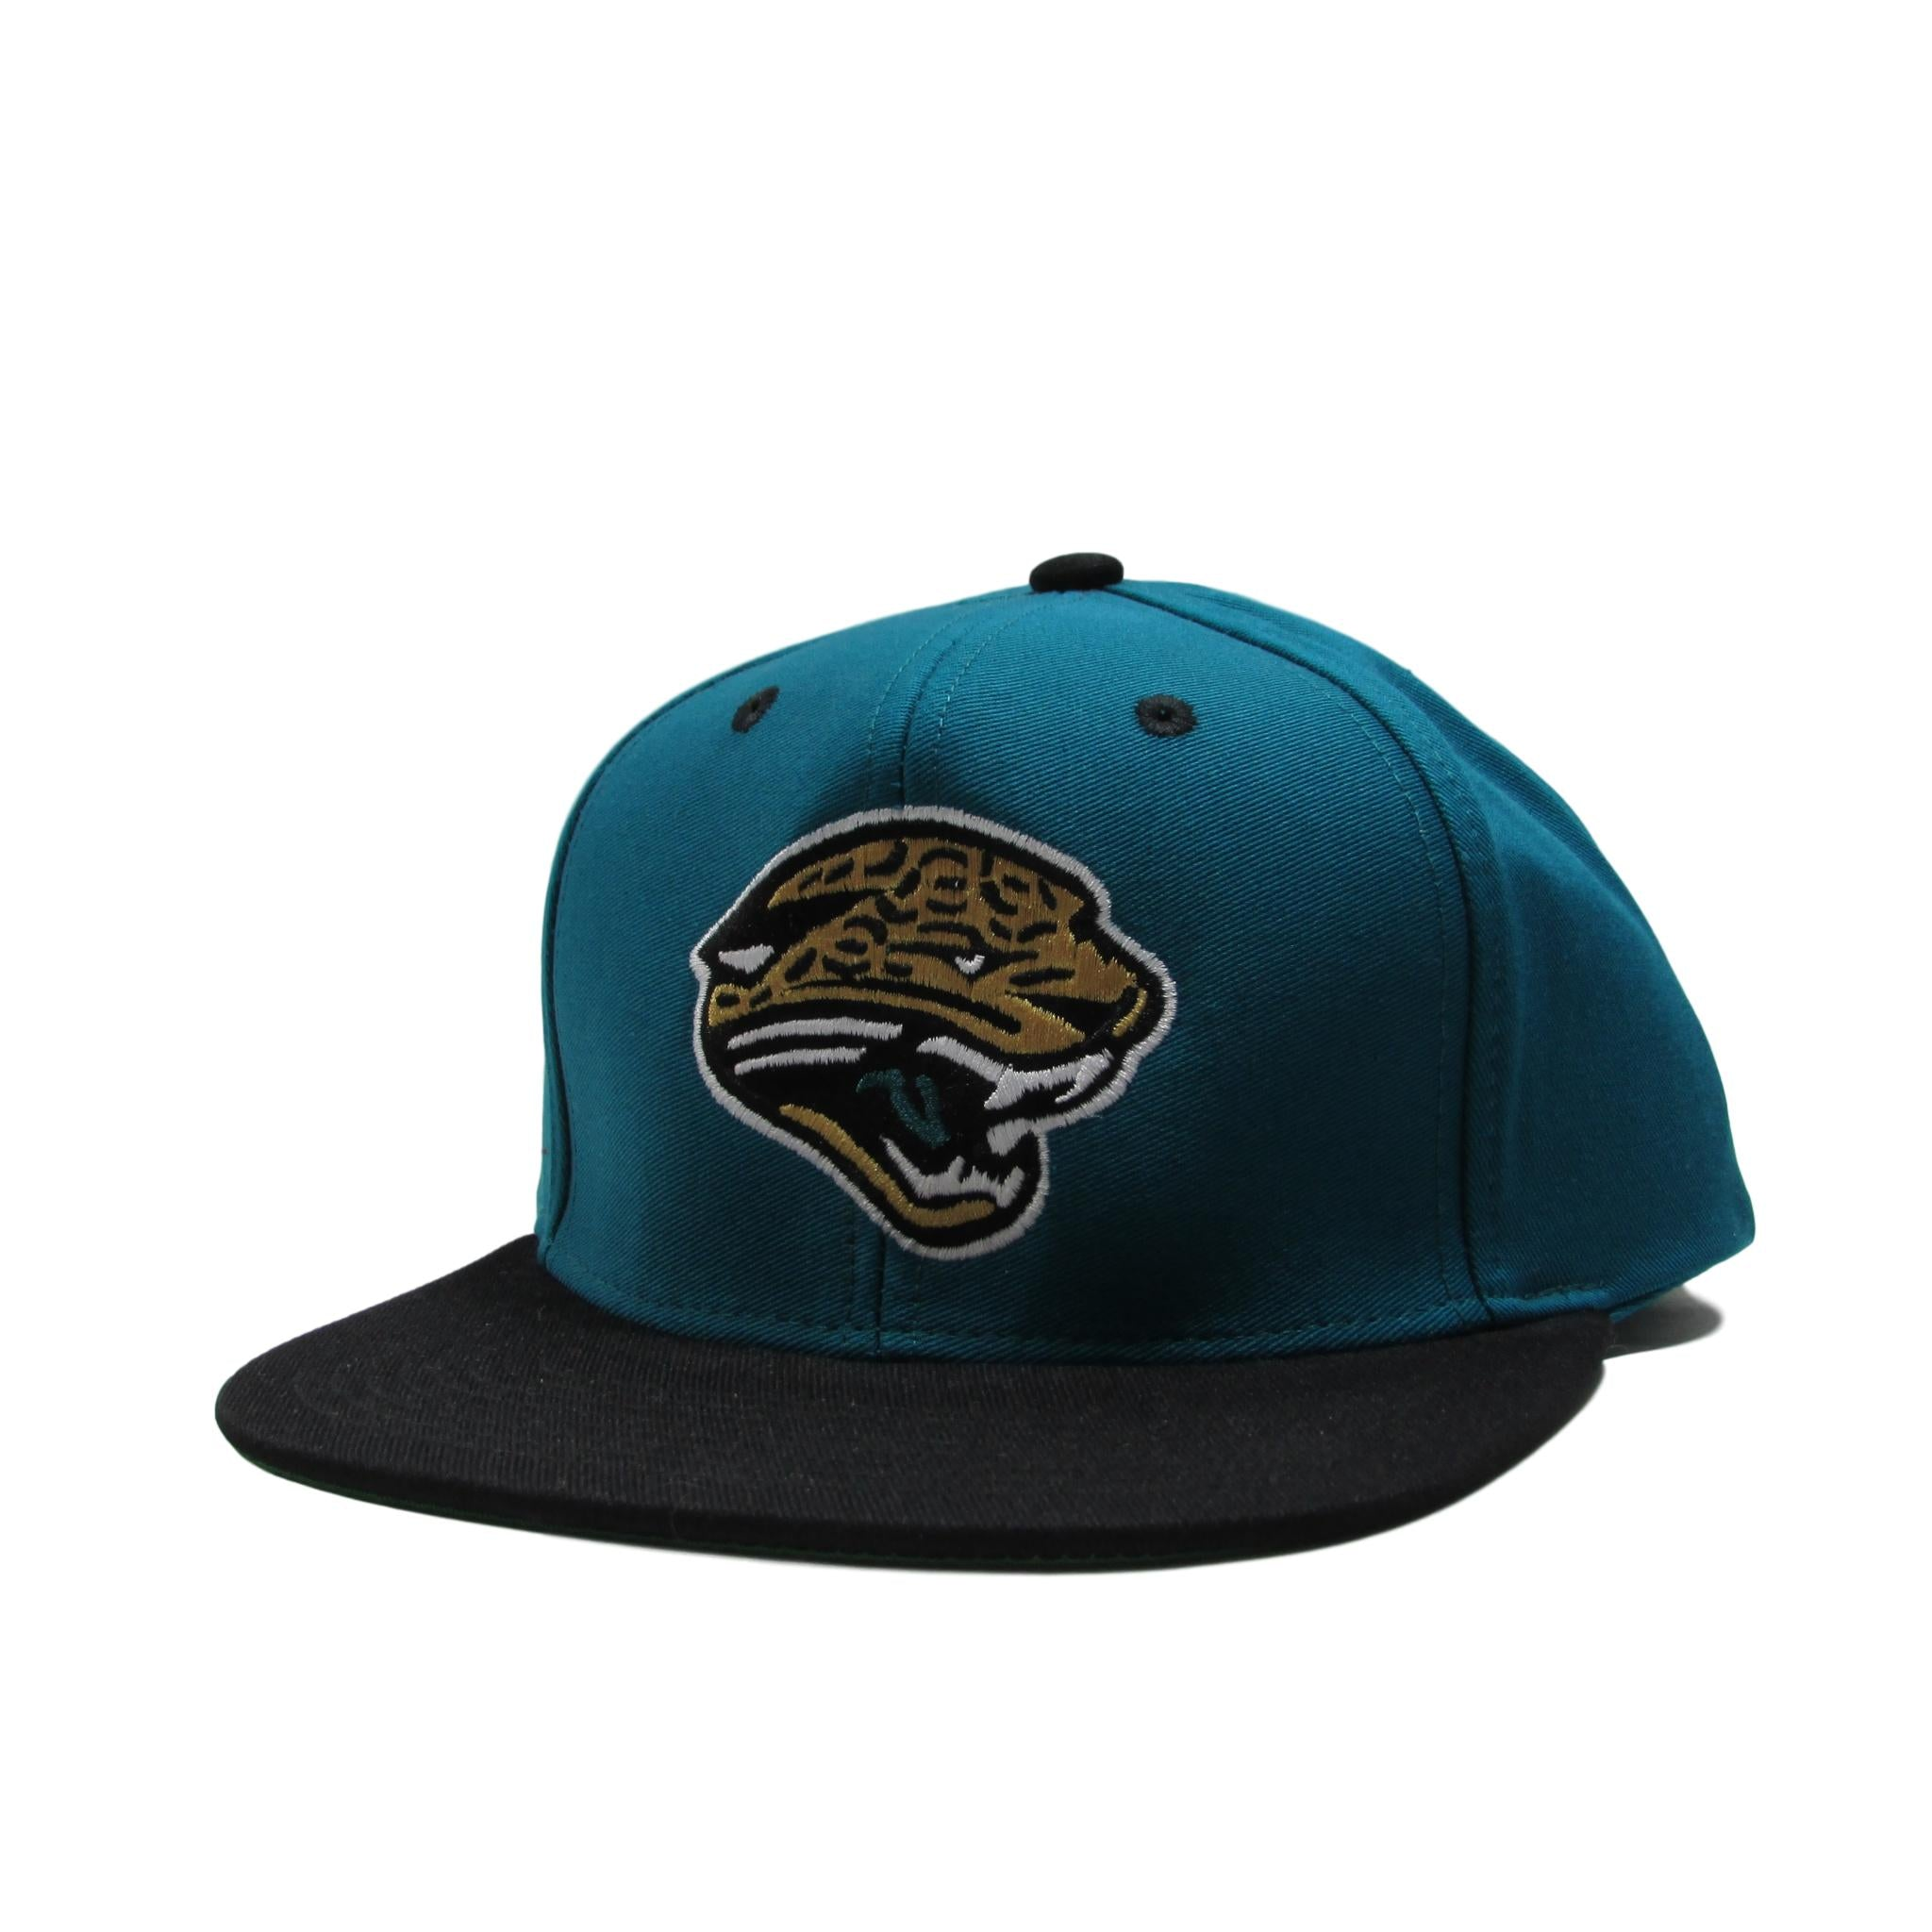 Jacksonville Jaguars Football Snapback Hat 1995 Throwback Logo